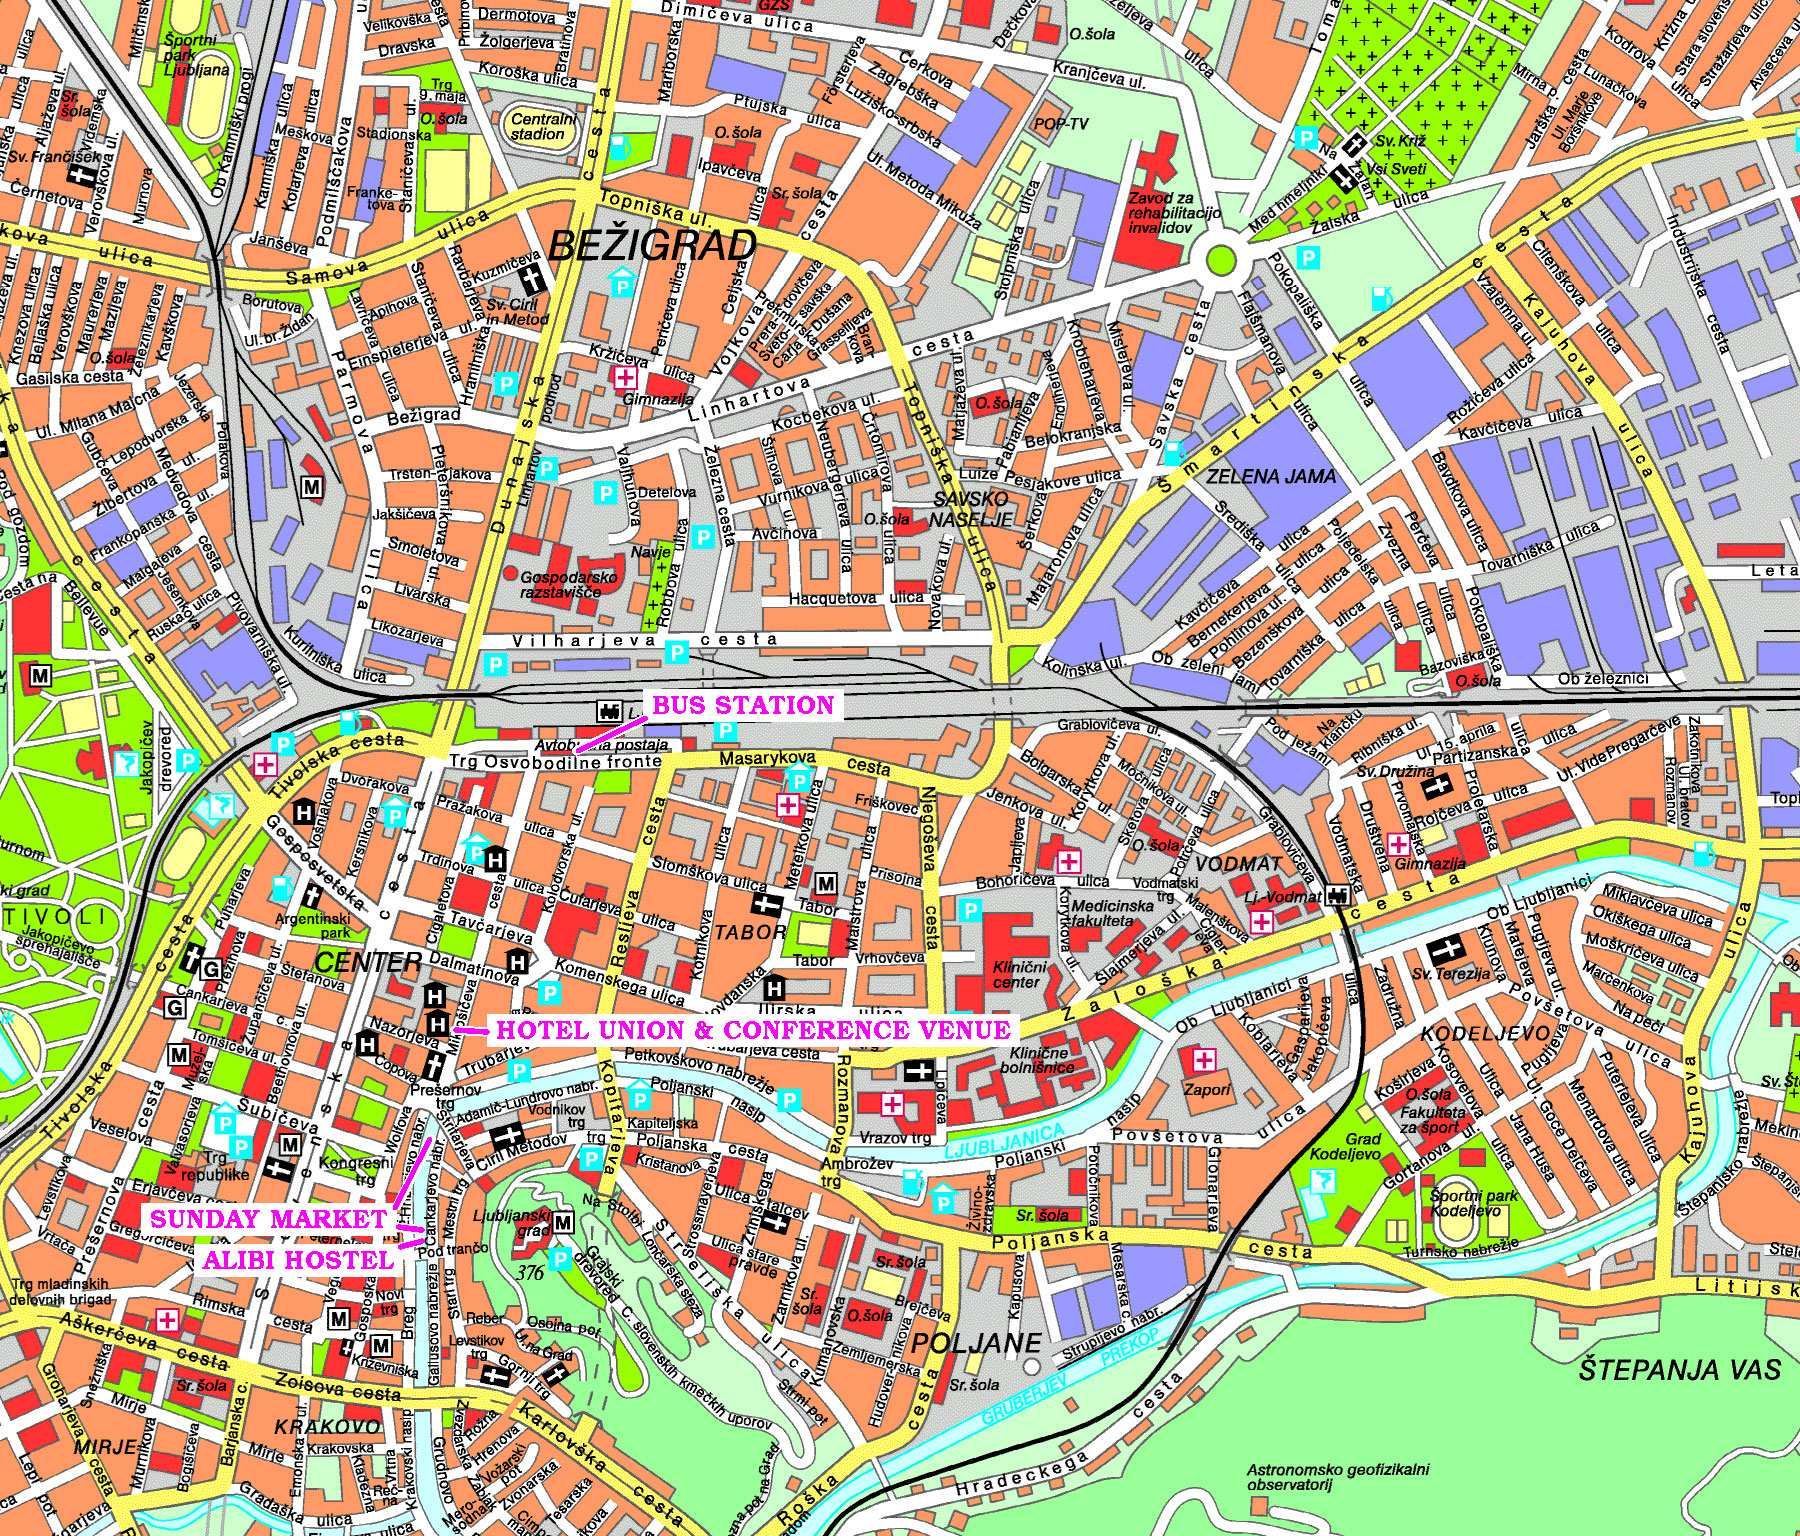 Large Ljubljana Maps For Free Download And Print High